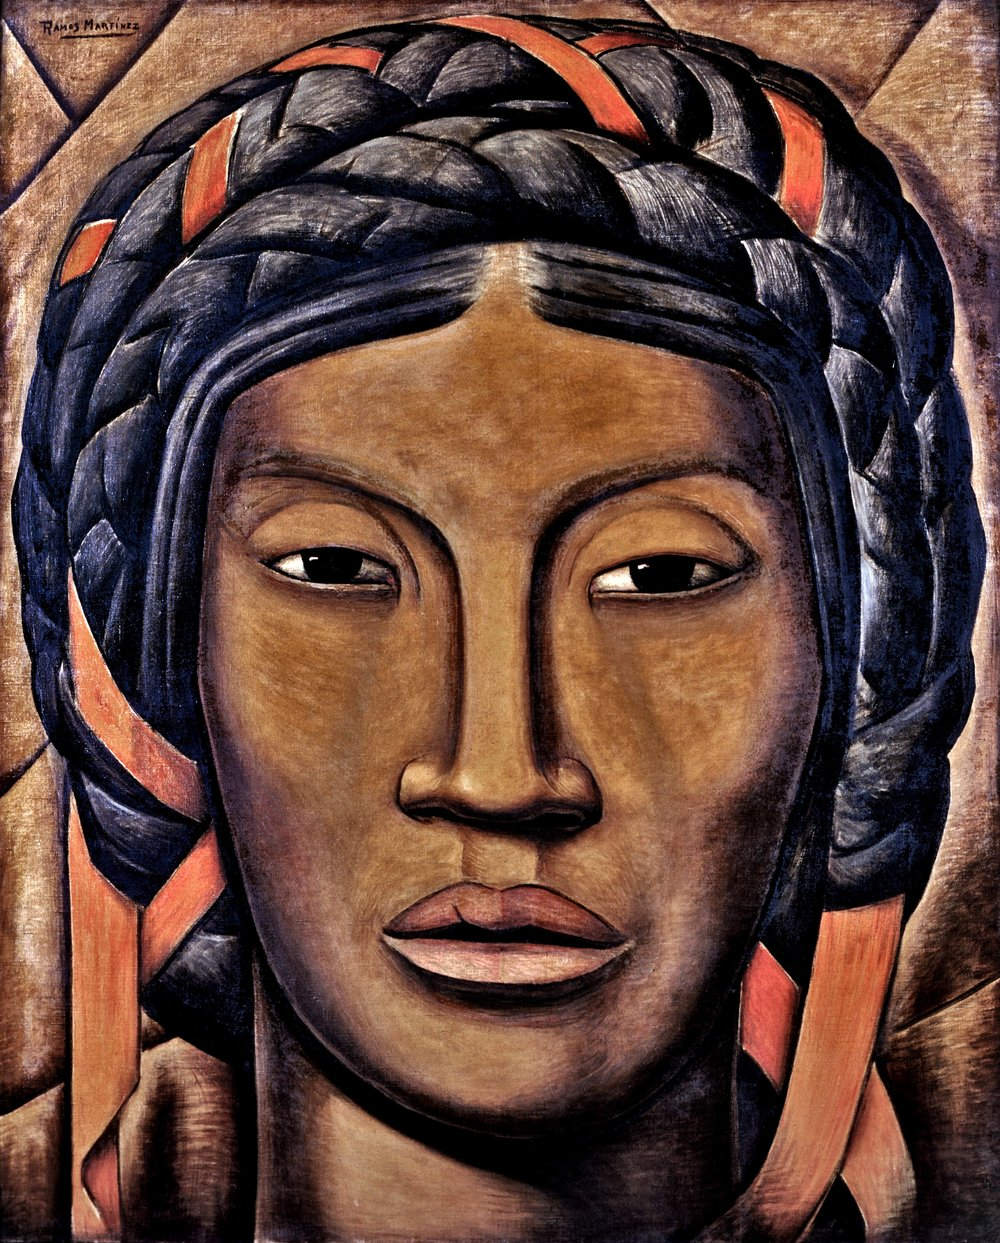 La India de Tehuantepec (Mujer de Tehuantepec) / The Woman from Tehuantepec  ca. 1930 oil on canvas / óleo sobre tela 49.5 x 40 inches / 125.7 x 101.6 centímetros Private collection